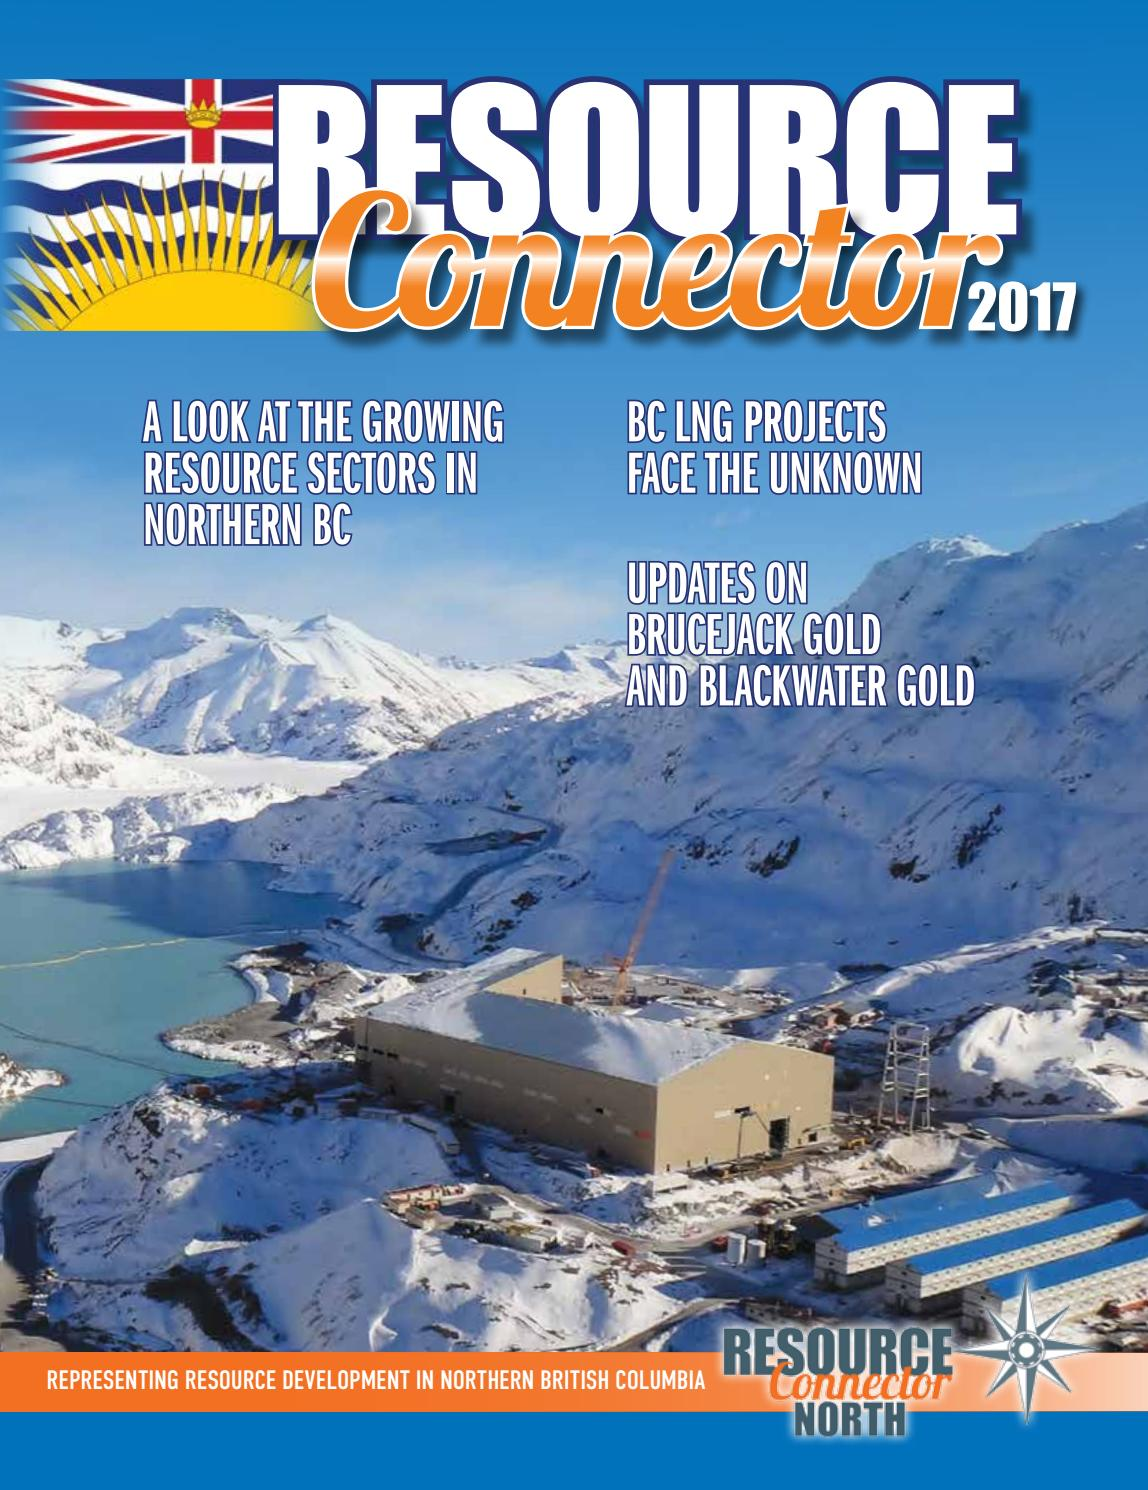 Resource Connector 2017 by DEL Communications Inc. - Issuu